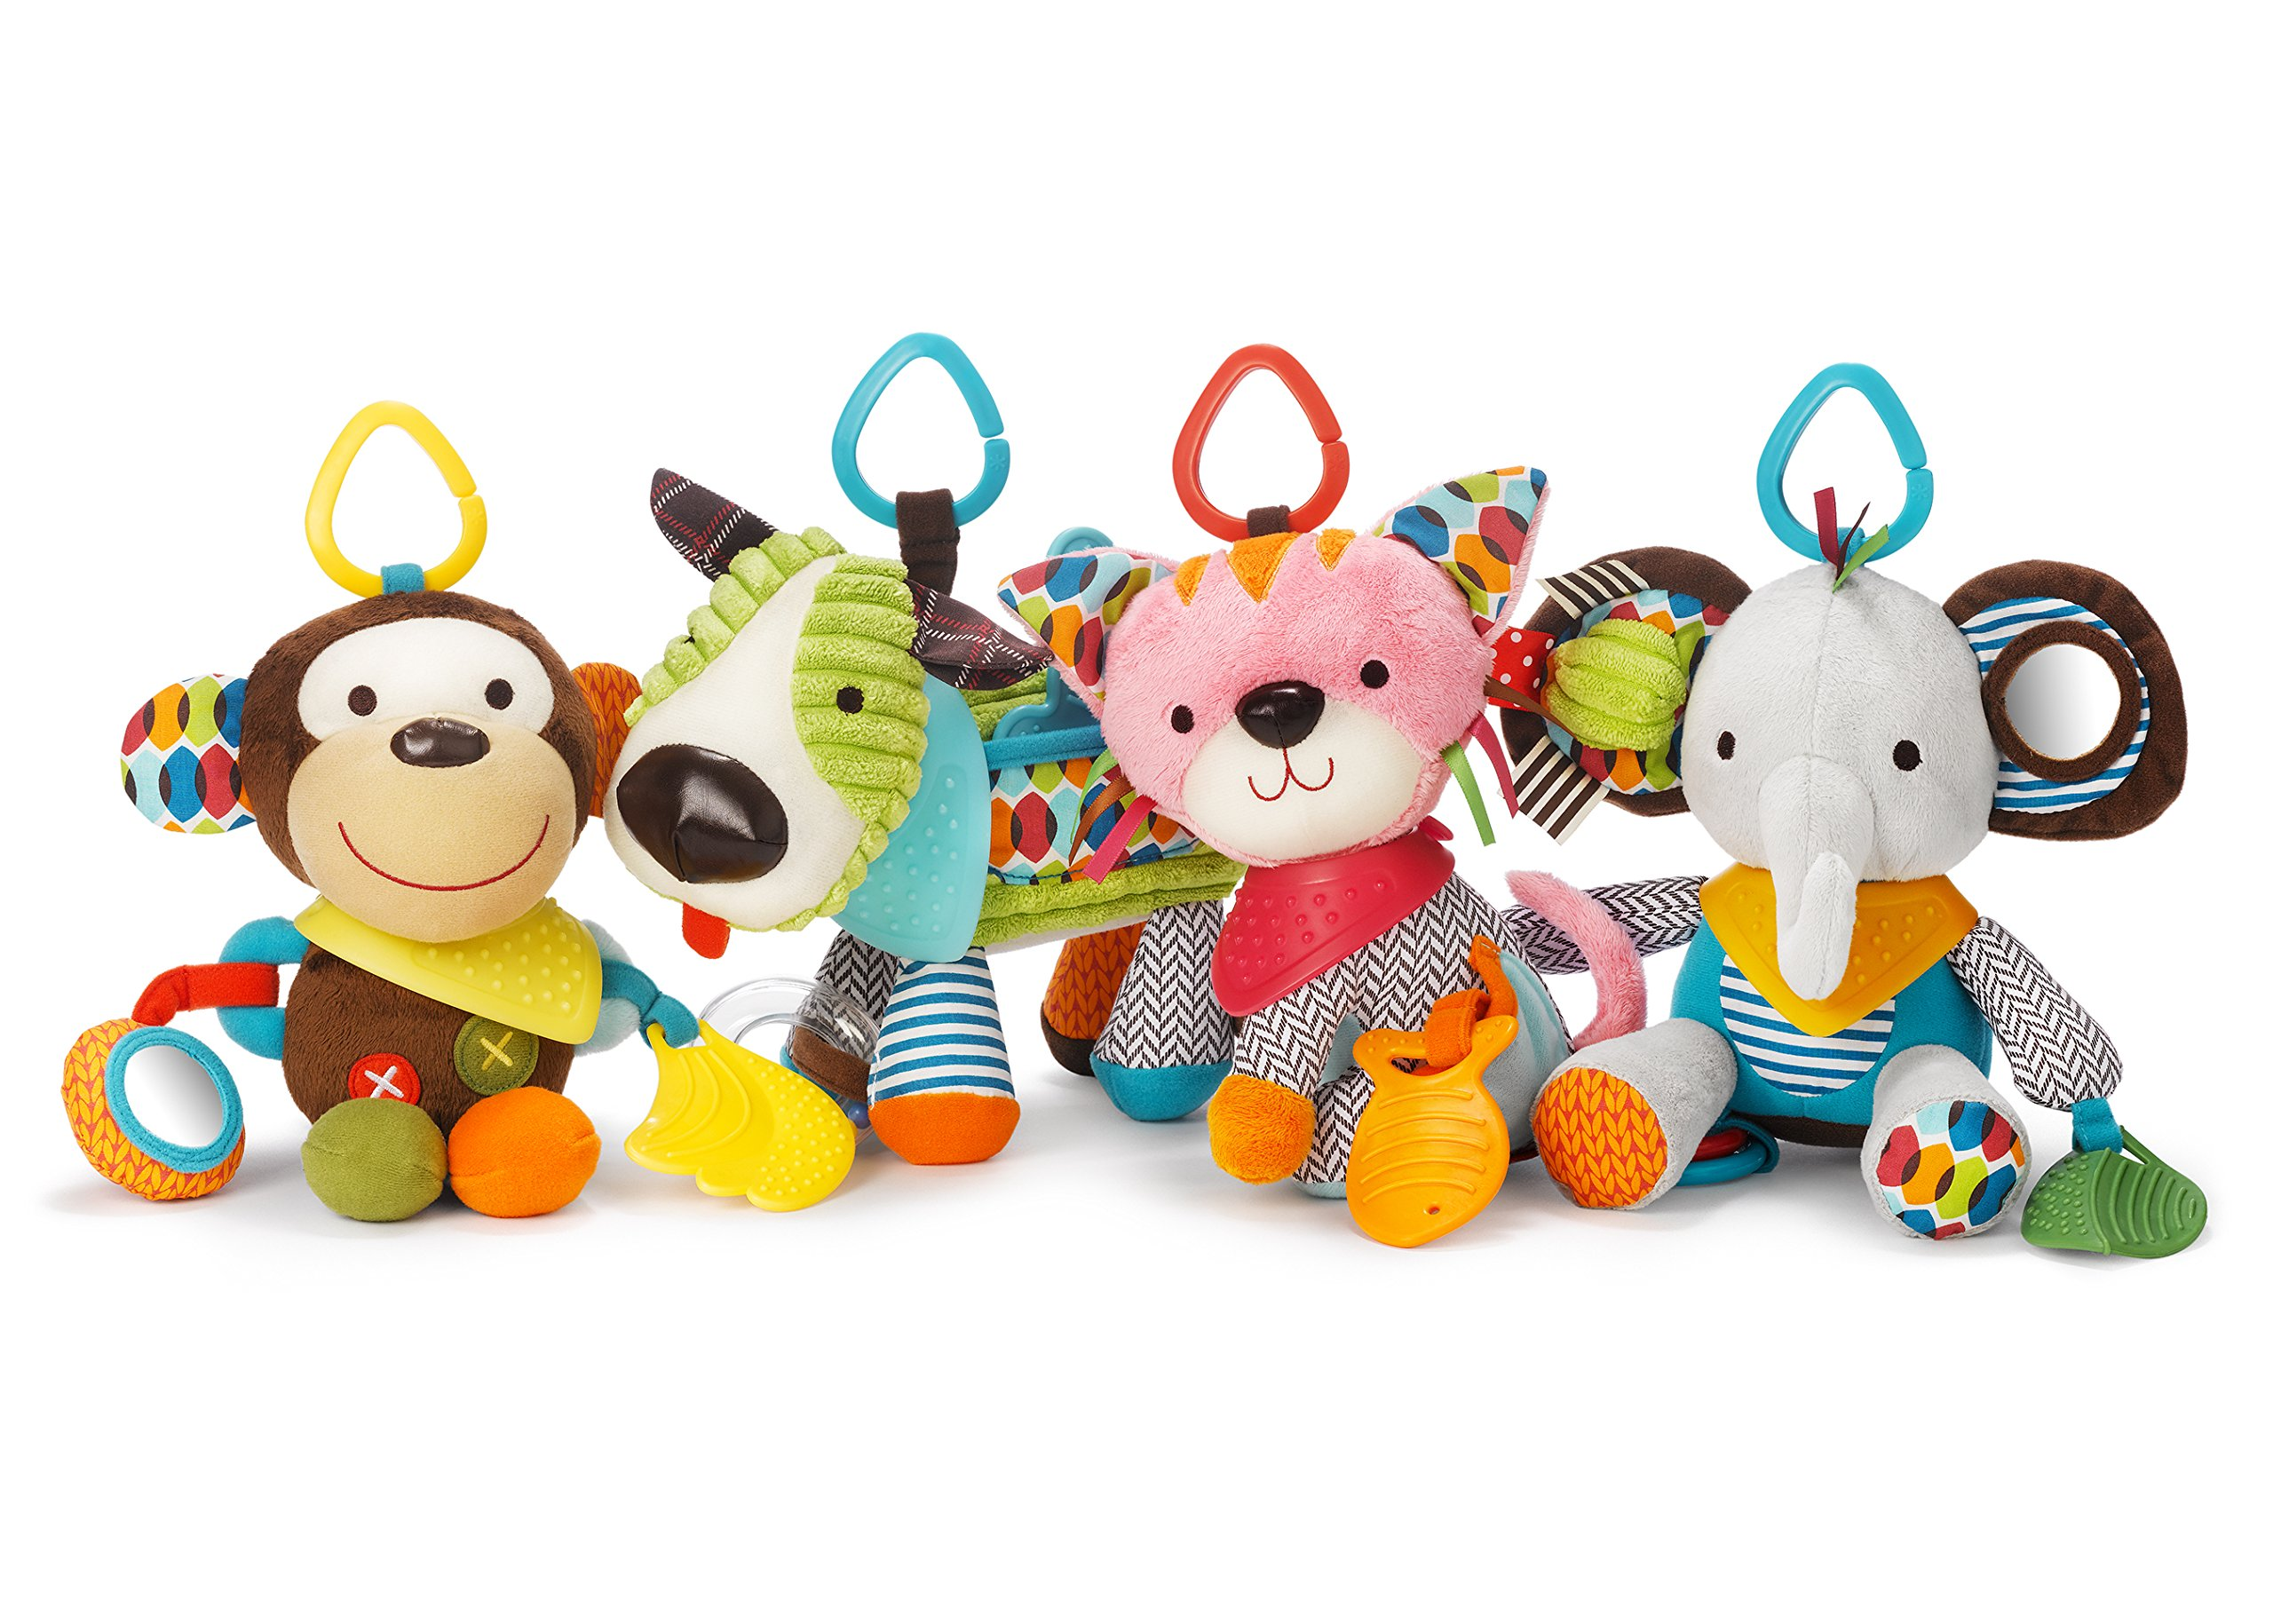 Skip Hop Bandana Buddies Baby Activity and Teething Toy with Multi-Sensory Rattle and Textures, Puppy by Skip Hop